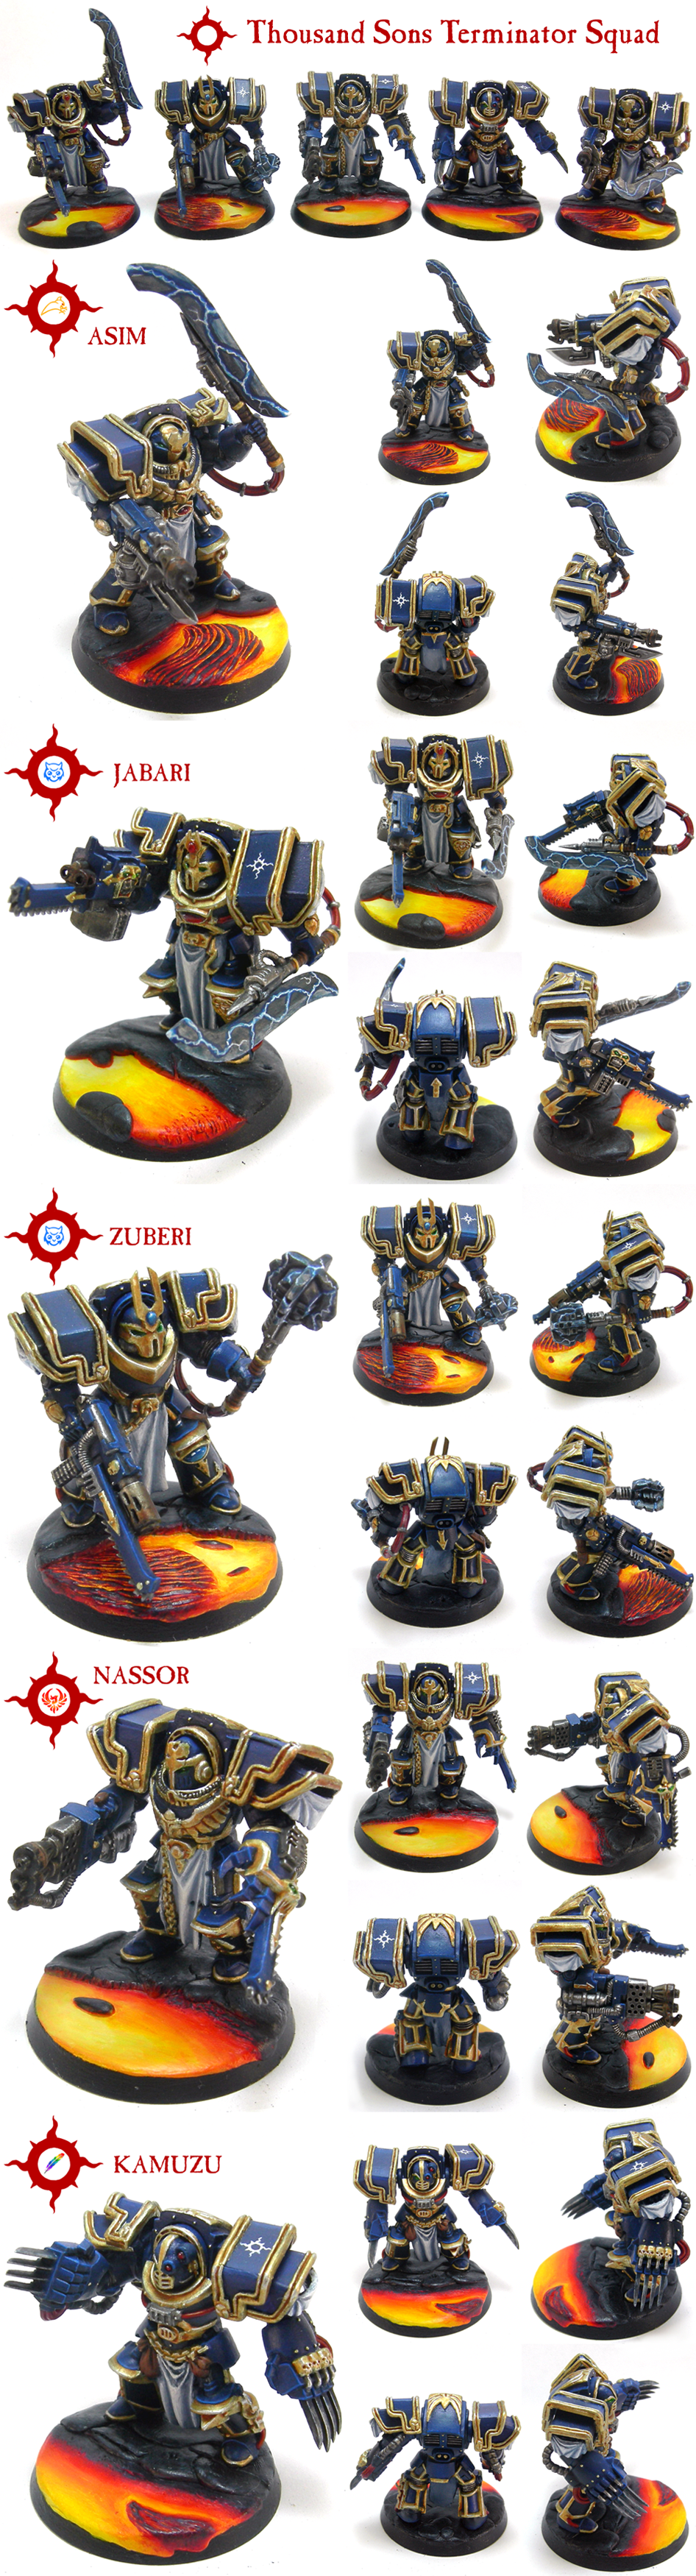 Customised Thousand Sons Terminator Squad by skycat